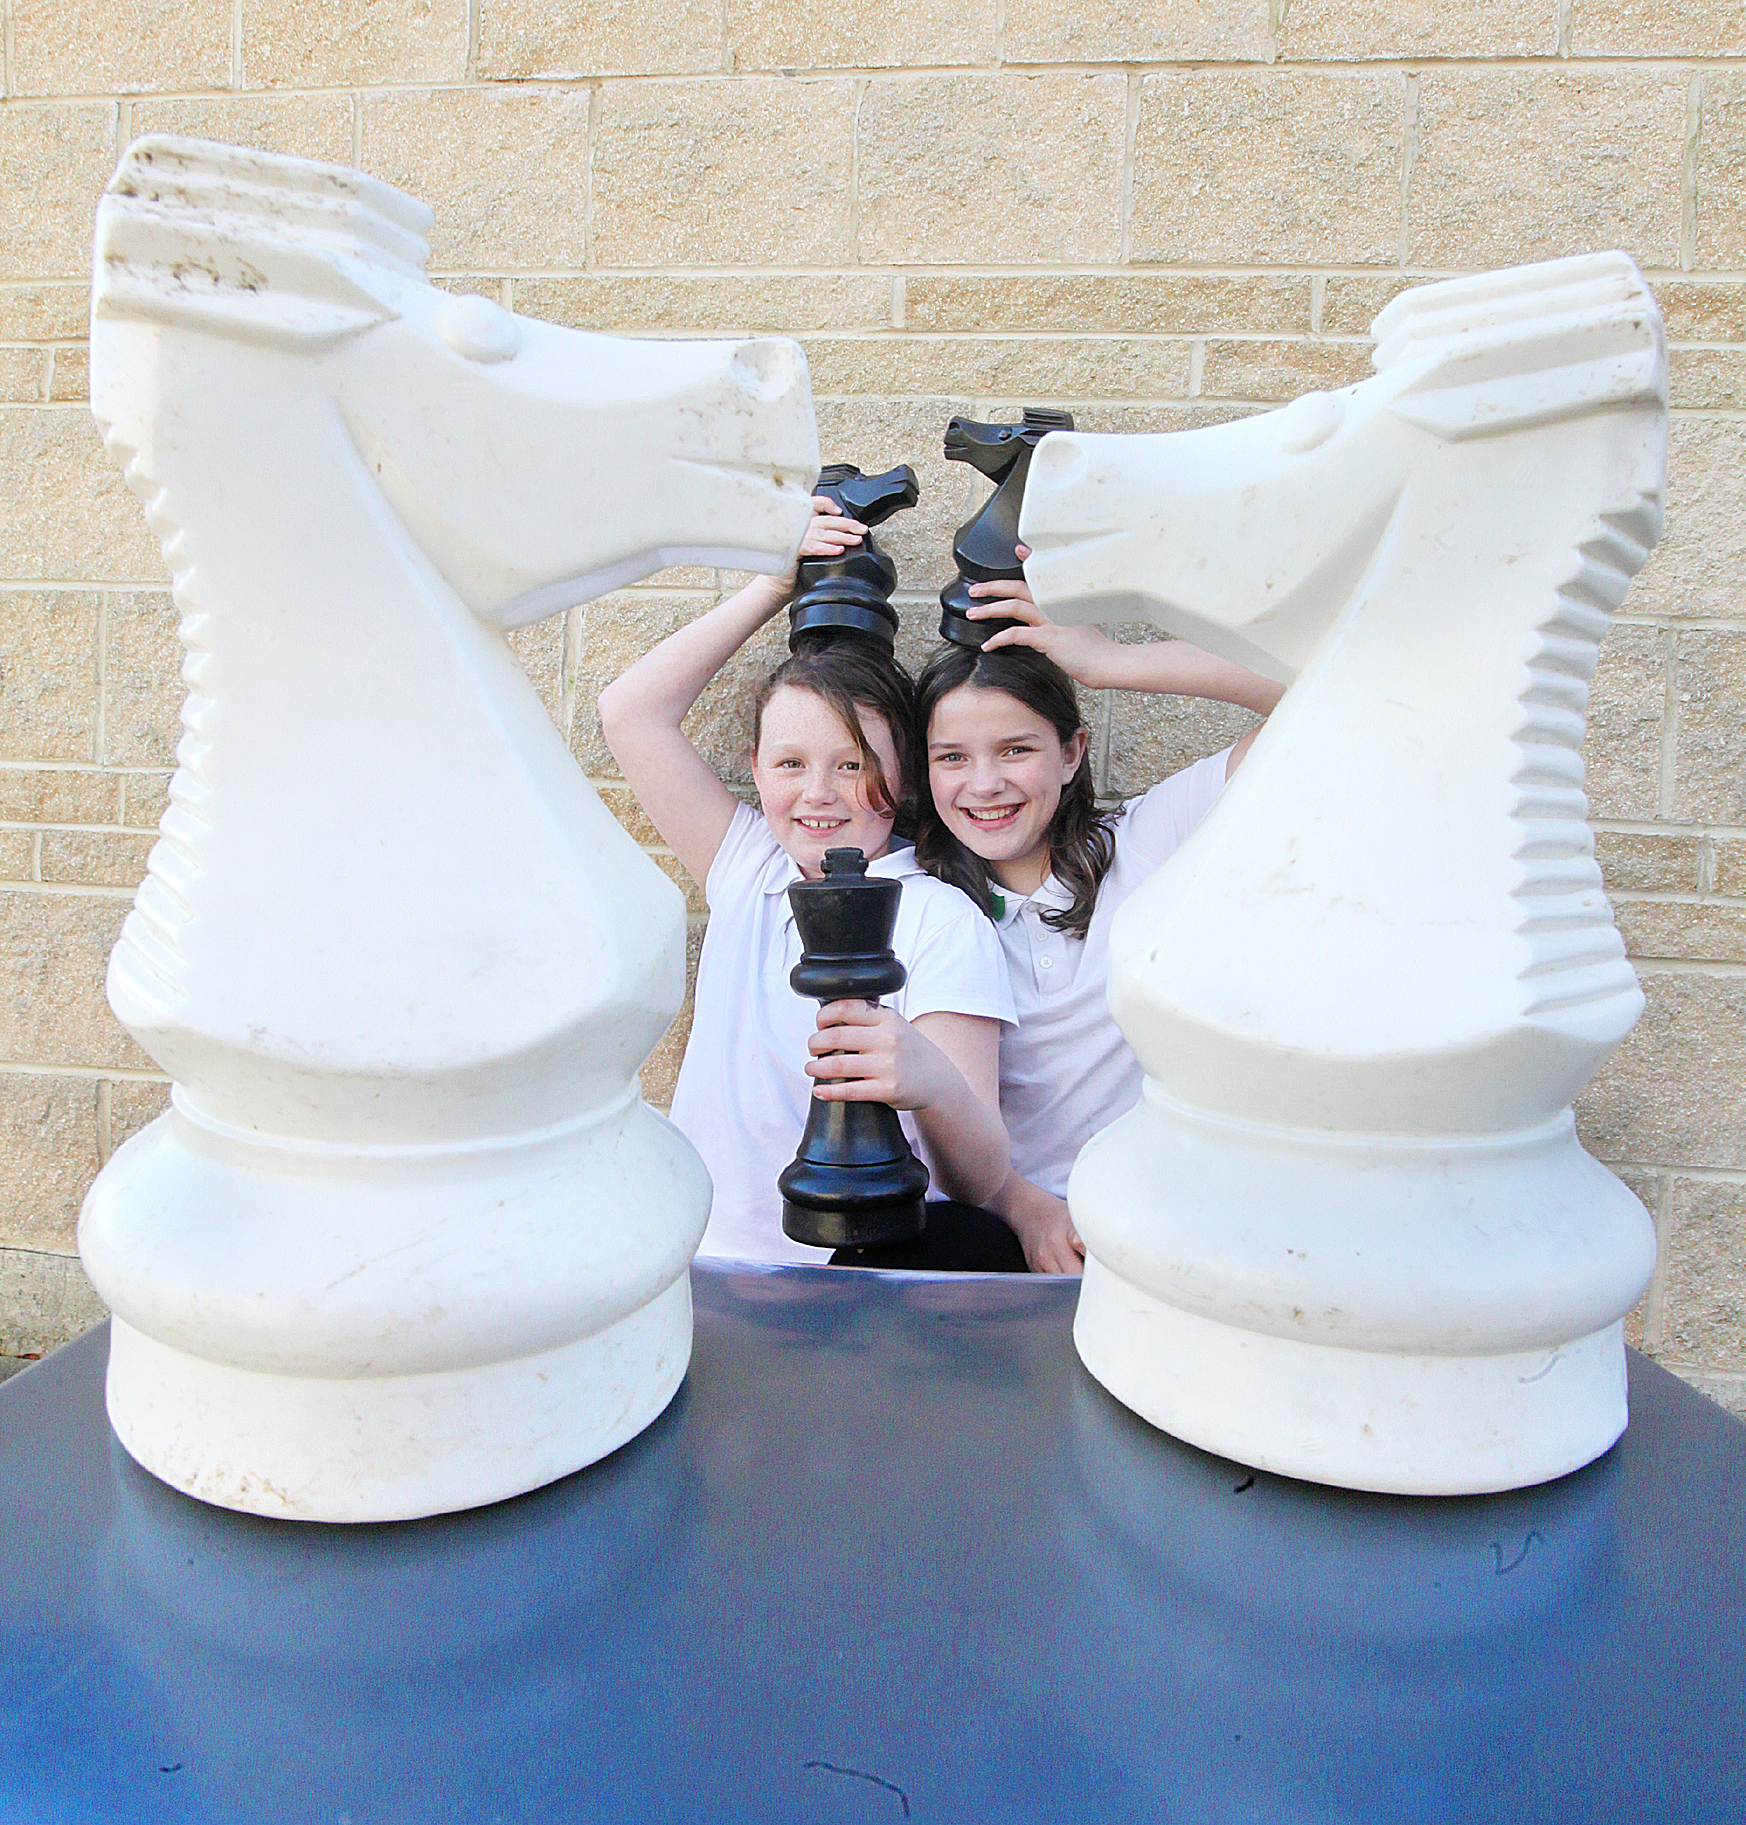 Glusburn pupils Sophie Nelson and Rebecca Sharp with some giant chess pieces